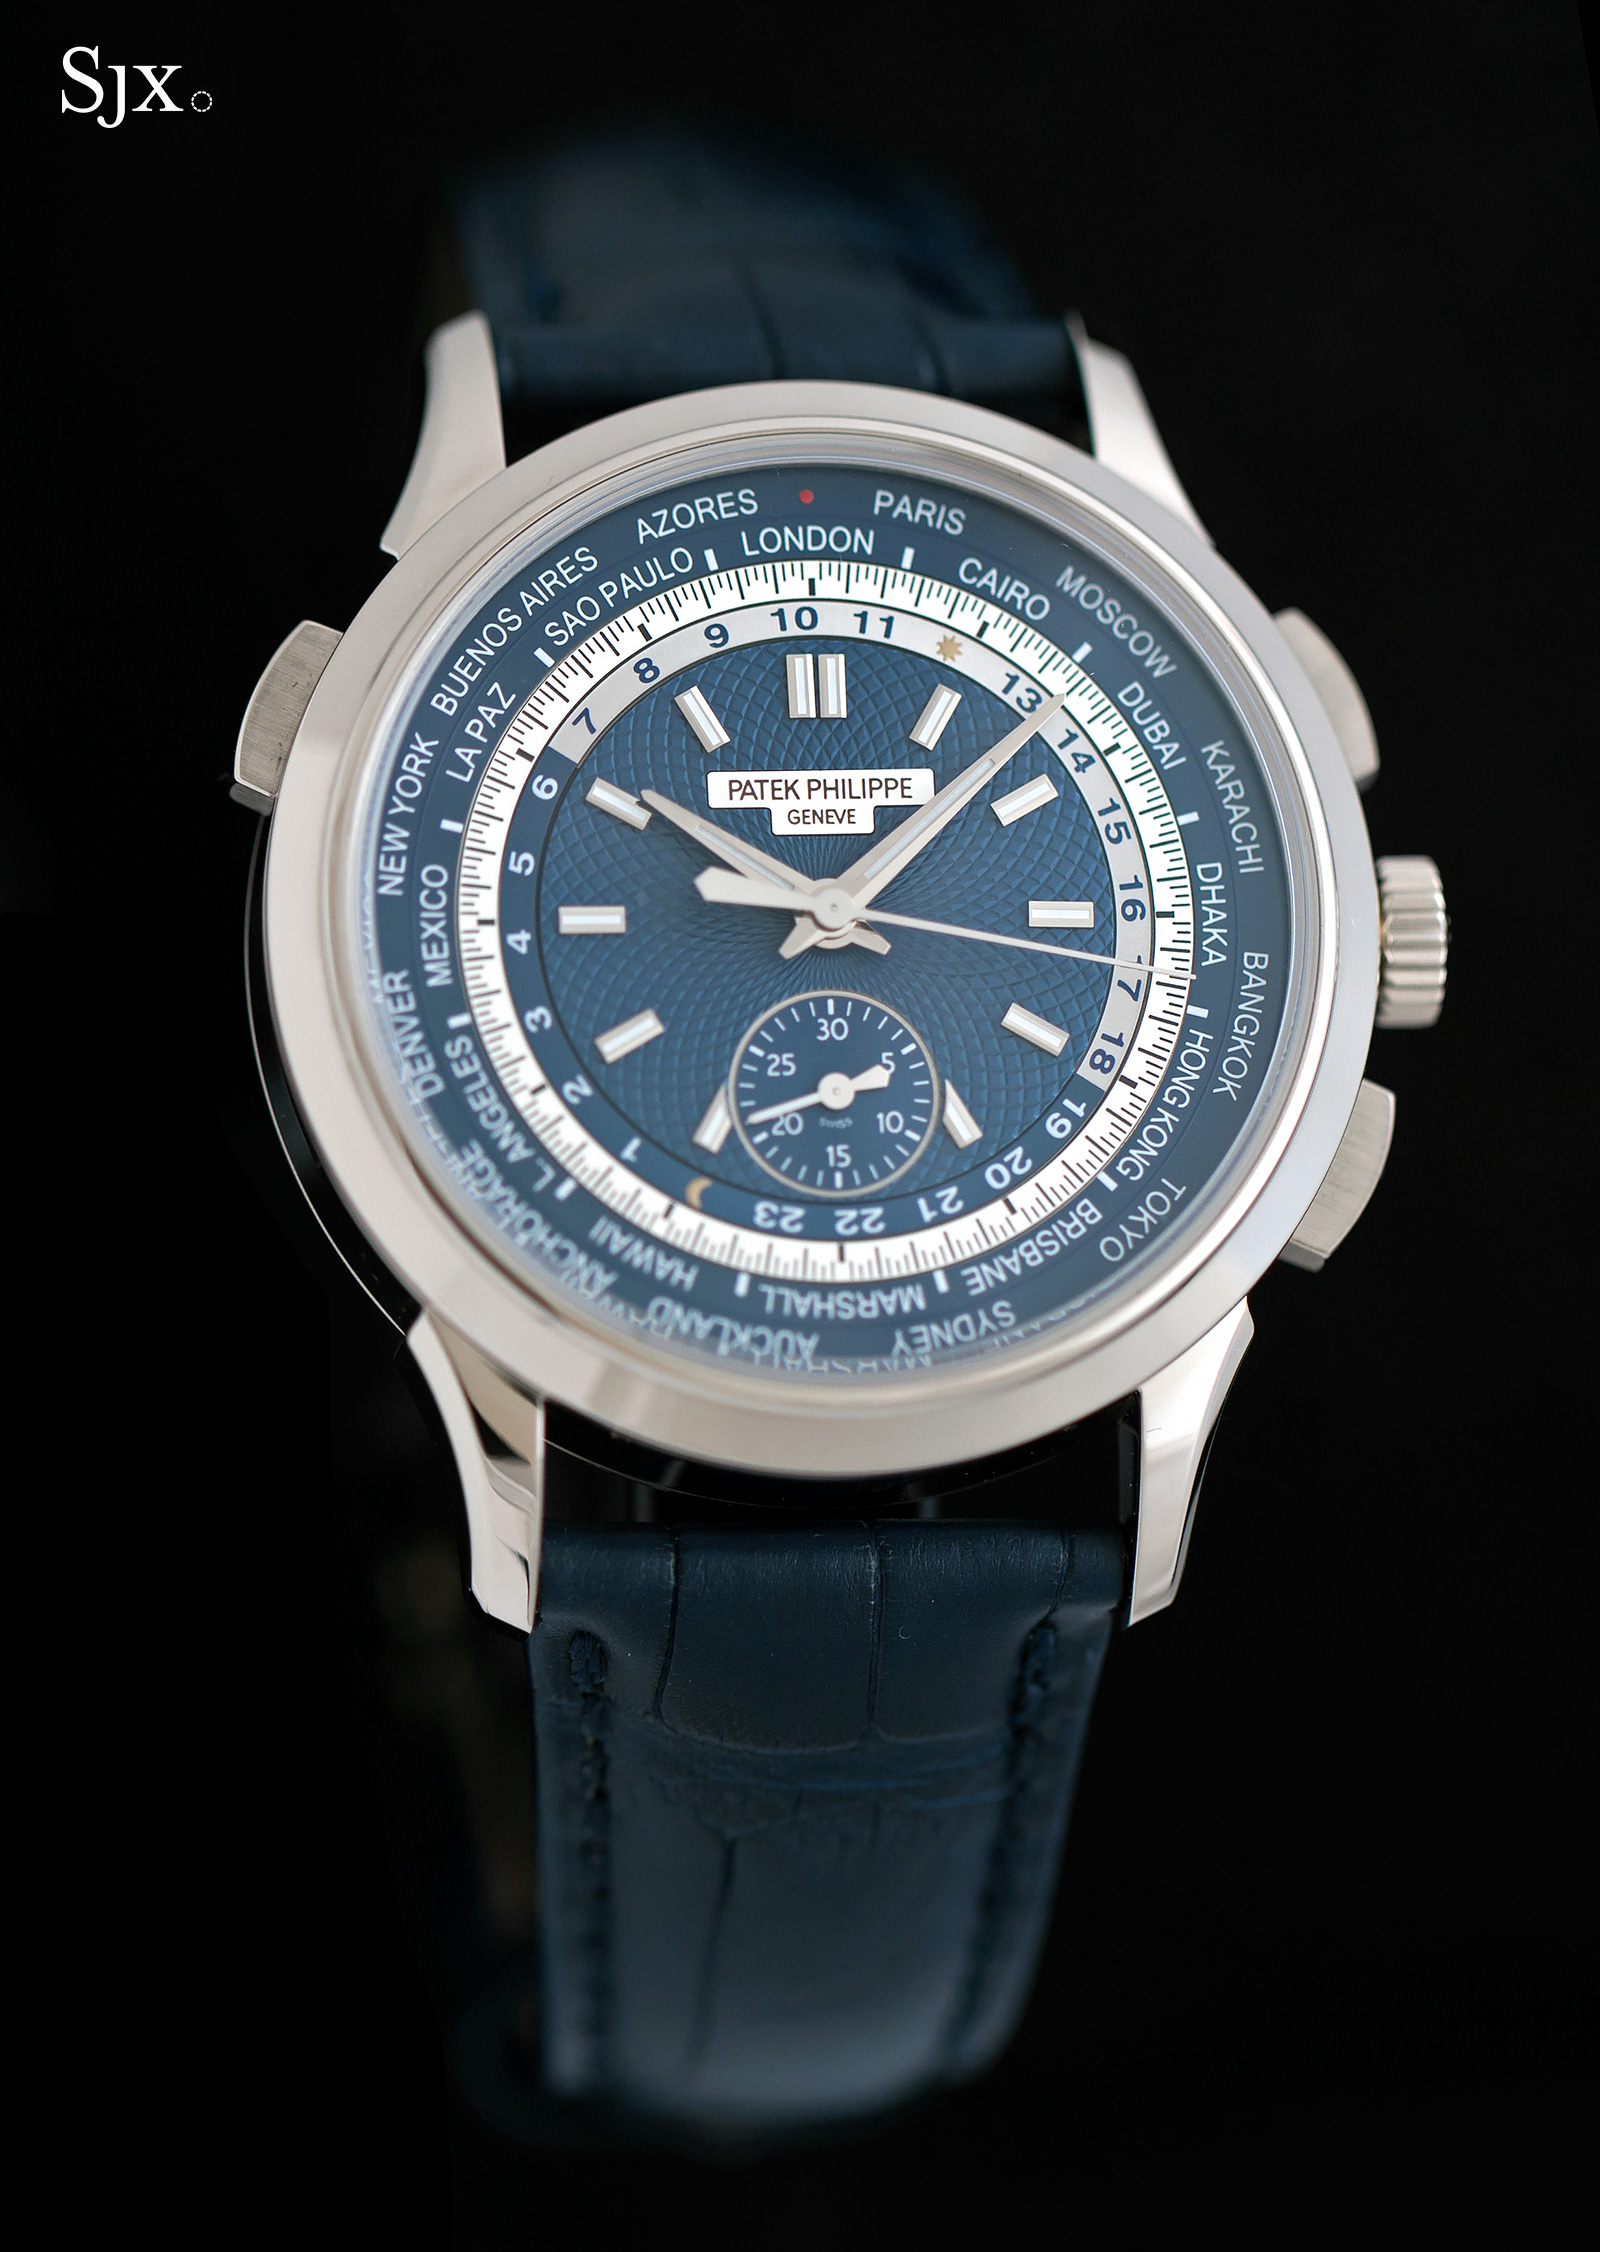 Patek Philippe World Time Chronograph Ref. 5930G 2